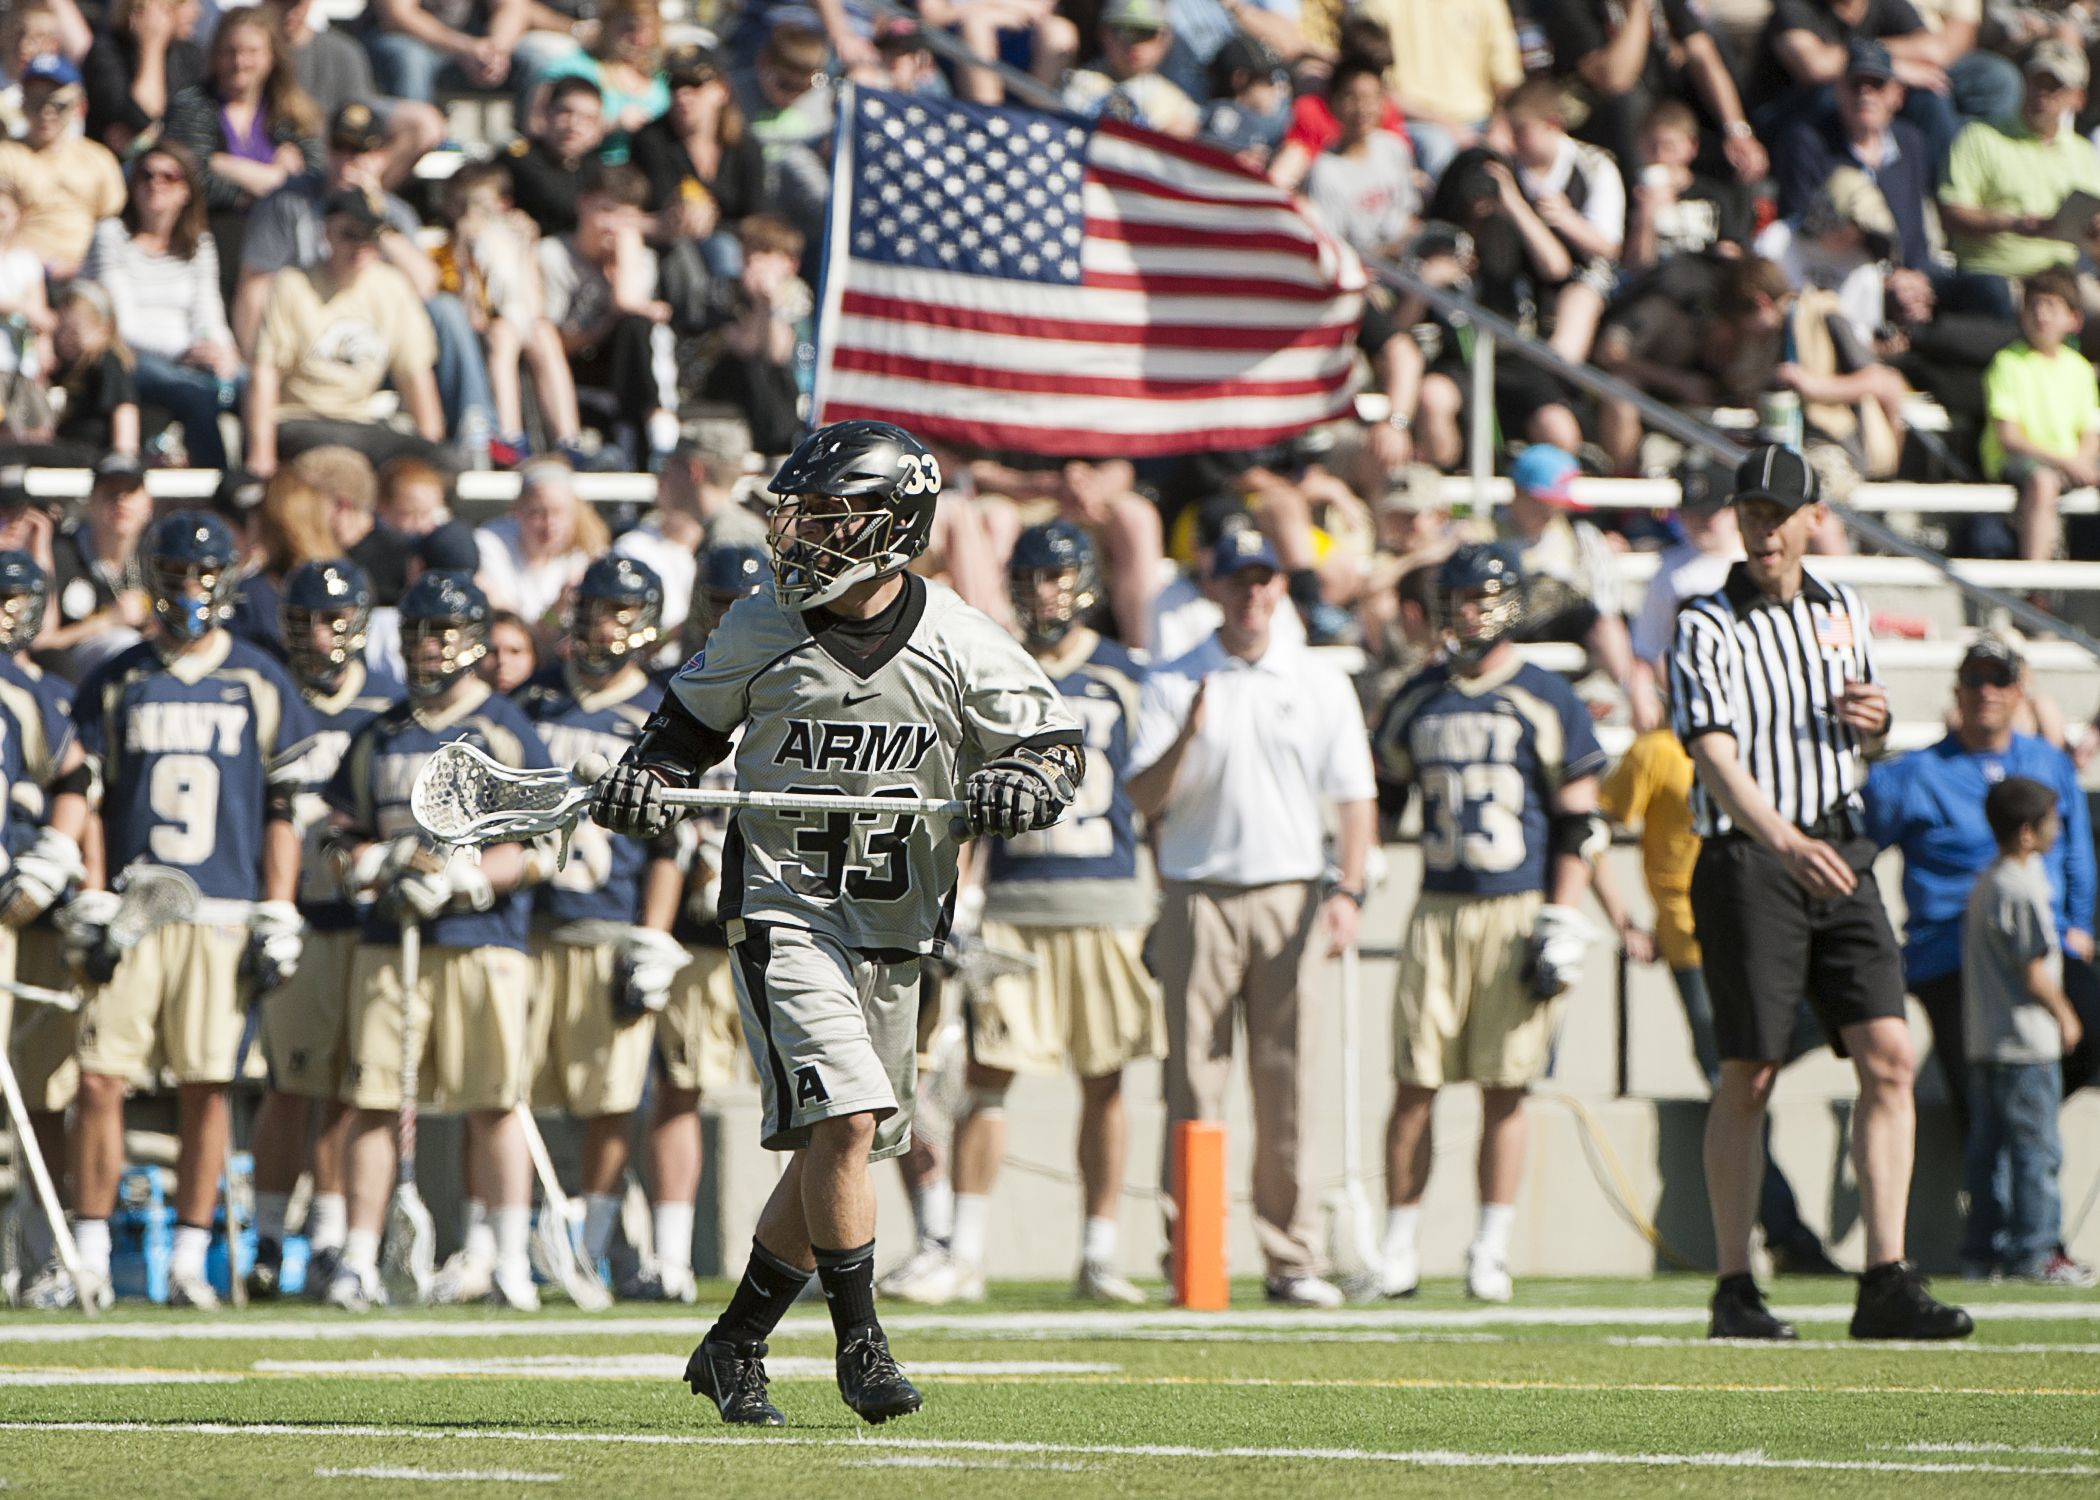 Army's Will Mazzone with the U.S. flag in the background of the 93rd Army-Navy lacrosse game.